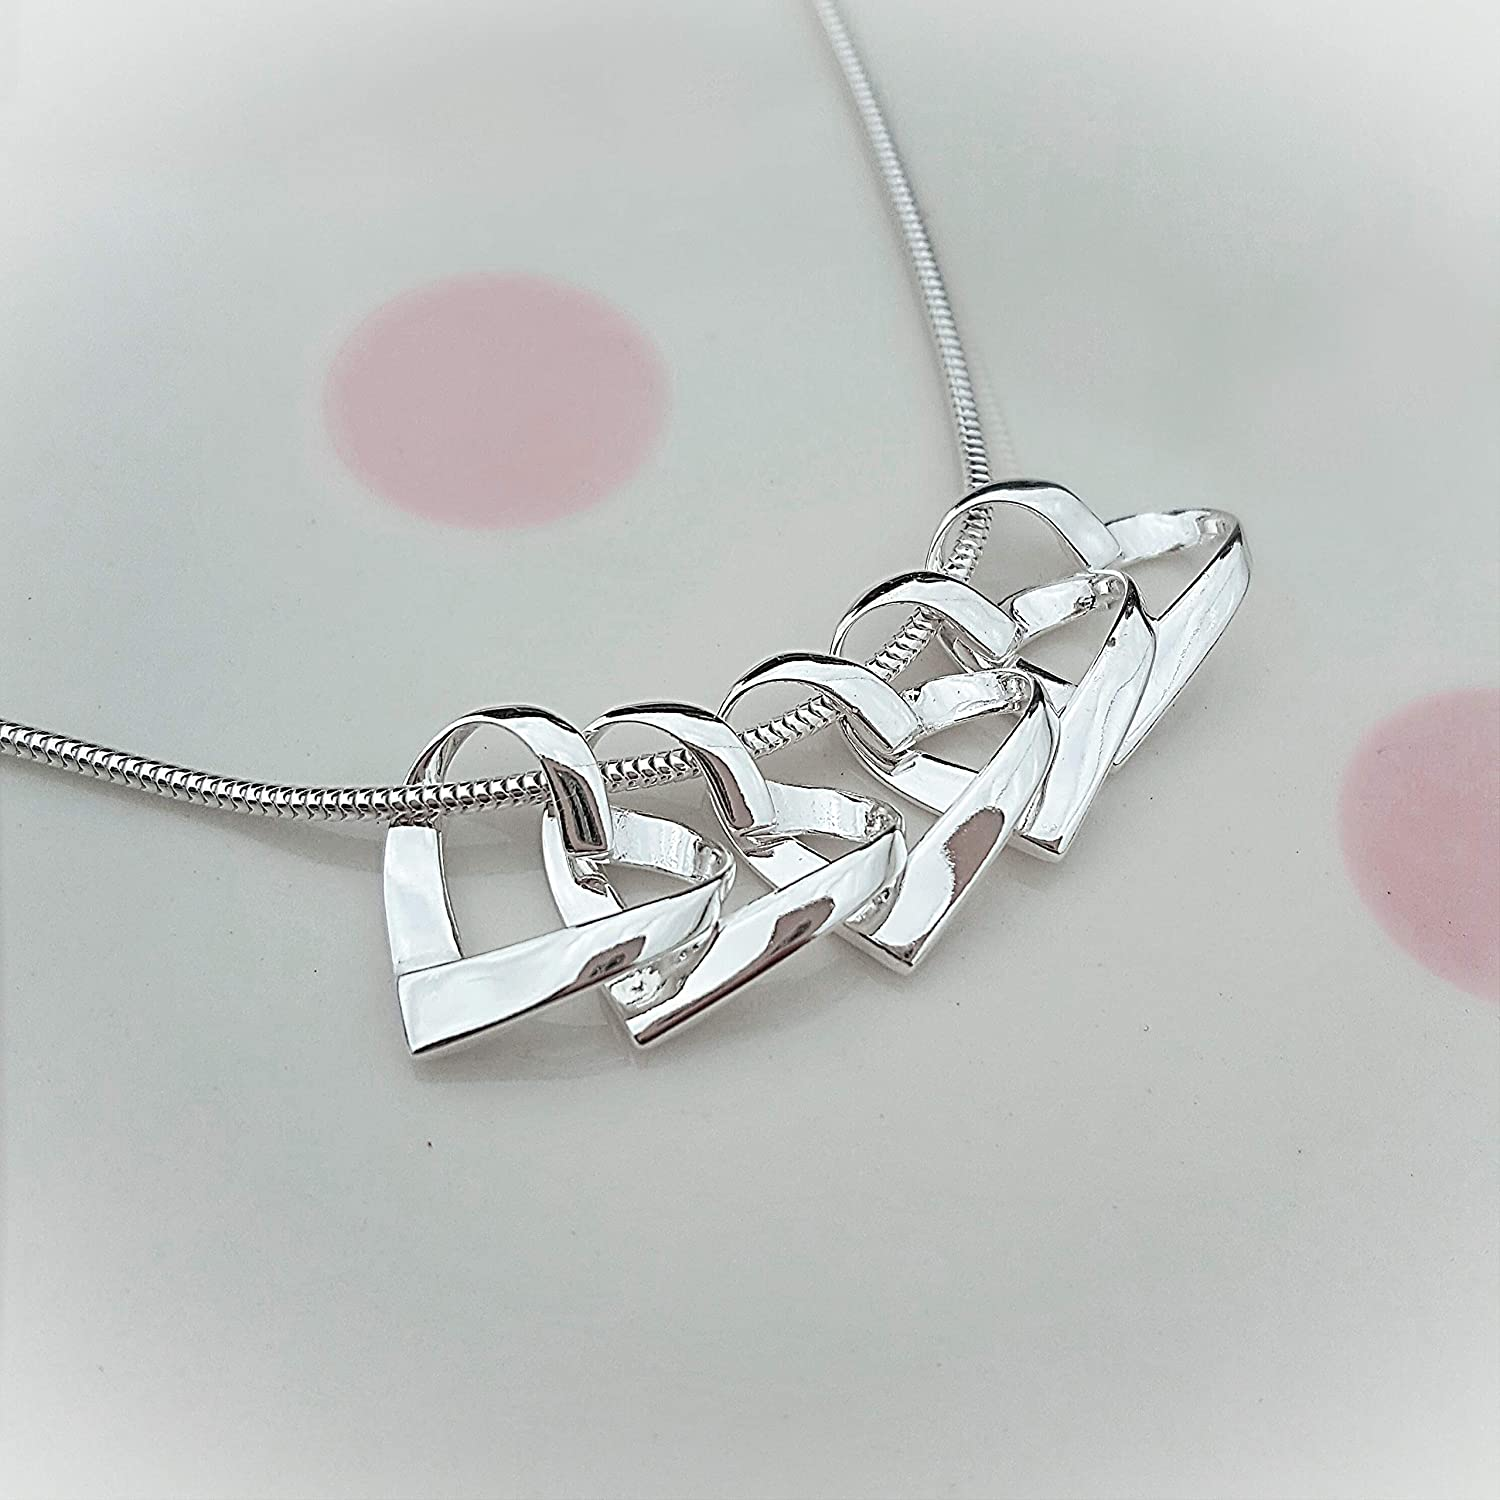 50th Birthday Necklace//50th Birthday Gift For Her//Five Hearts for Five Decades//50th Birthday Jewellery//50th Birthday Gift